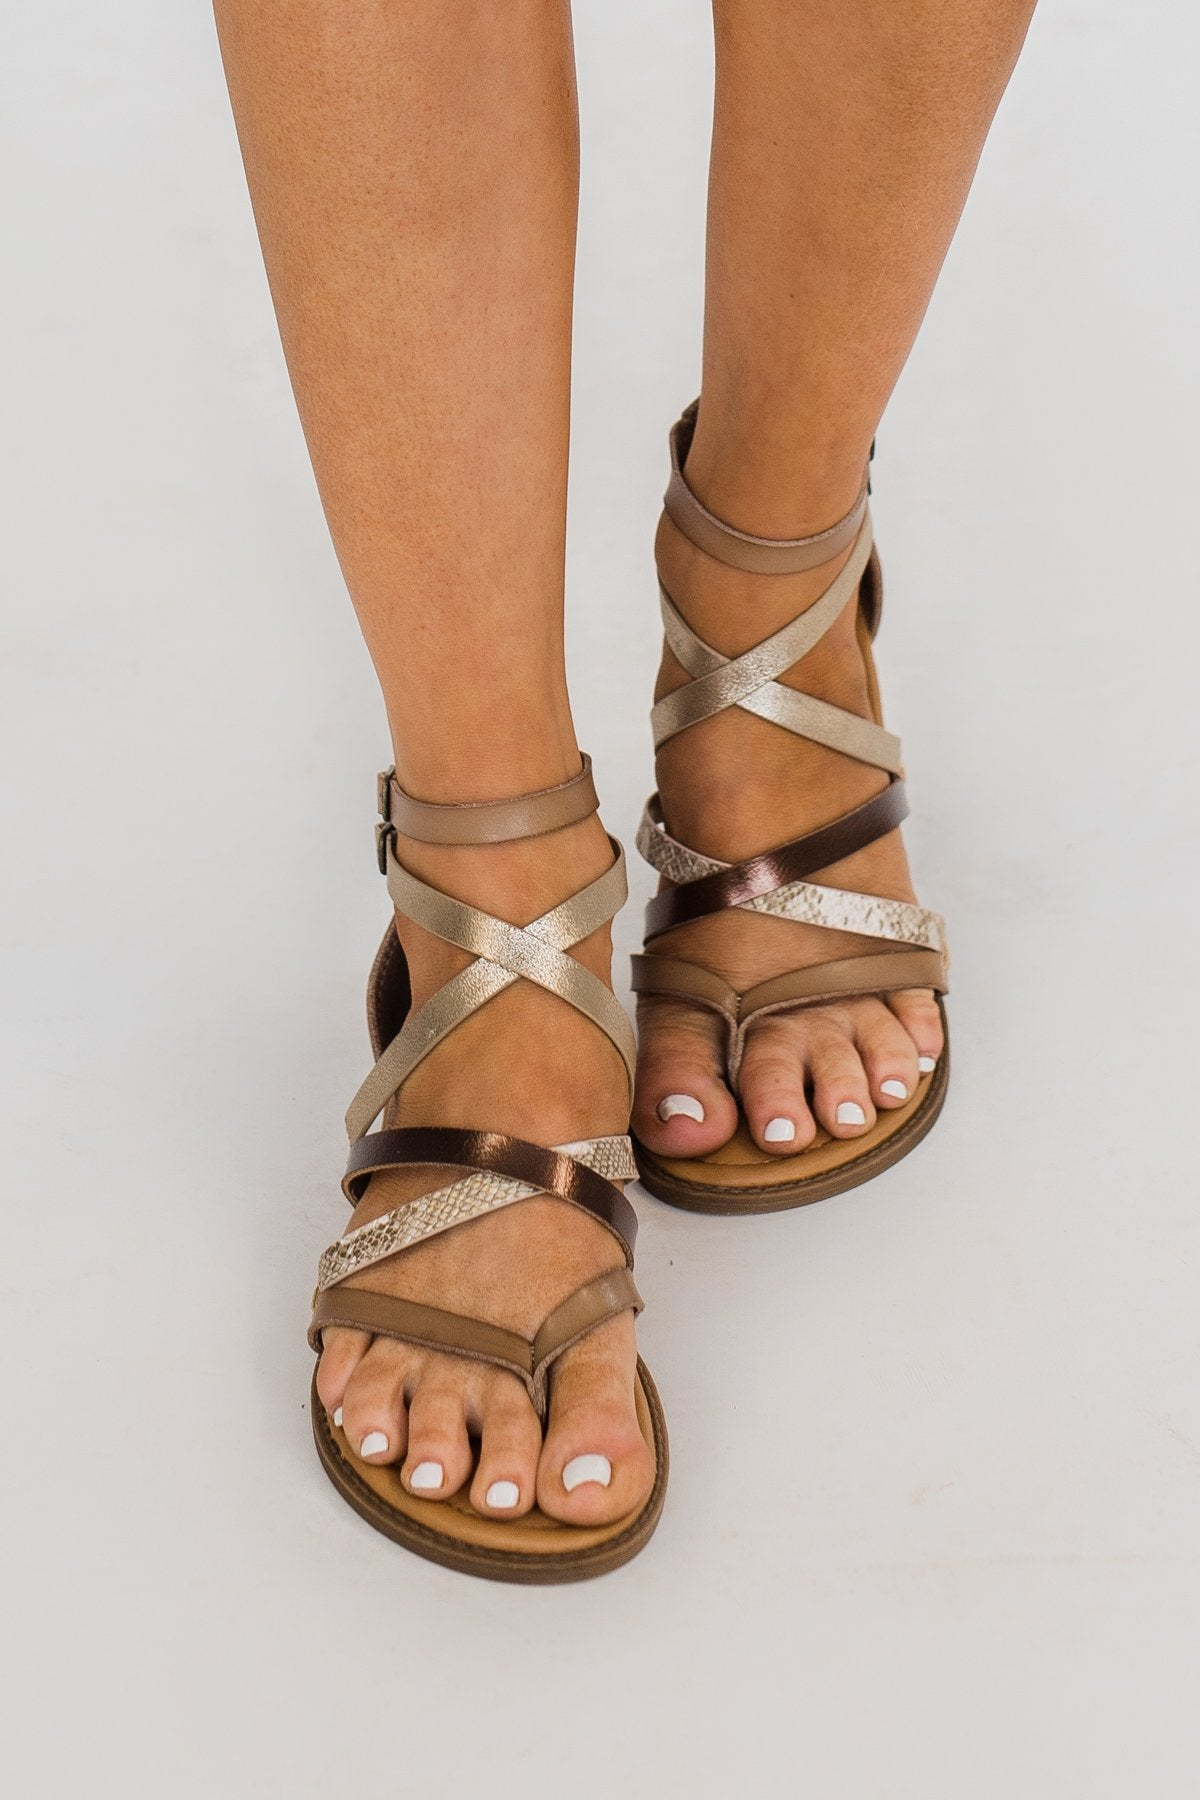 Blowfish Bungalow Sandals- Sand Amber